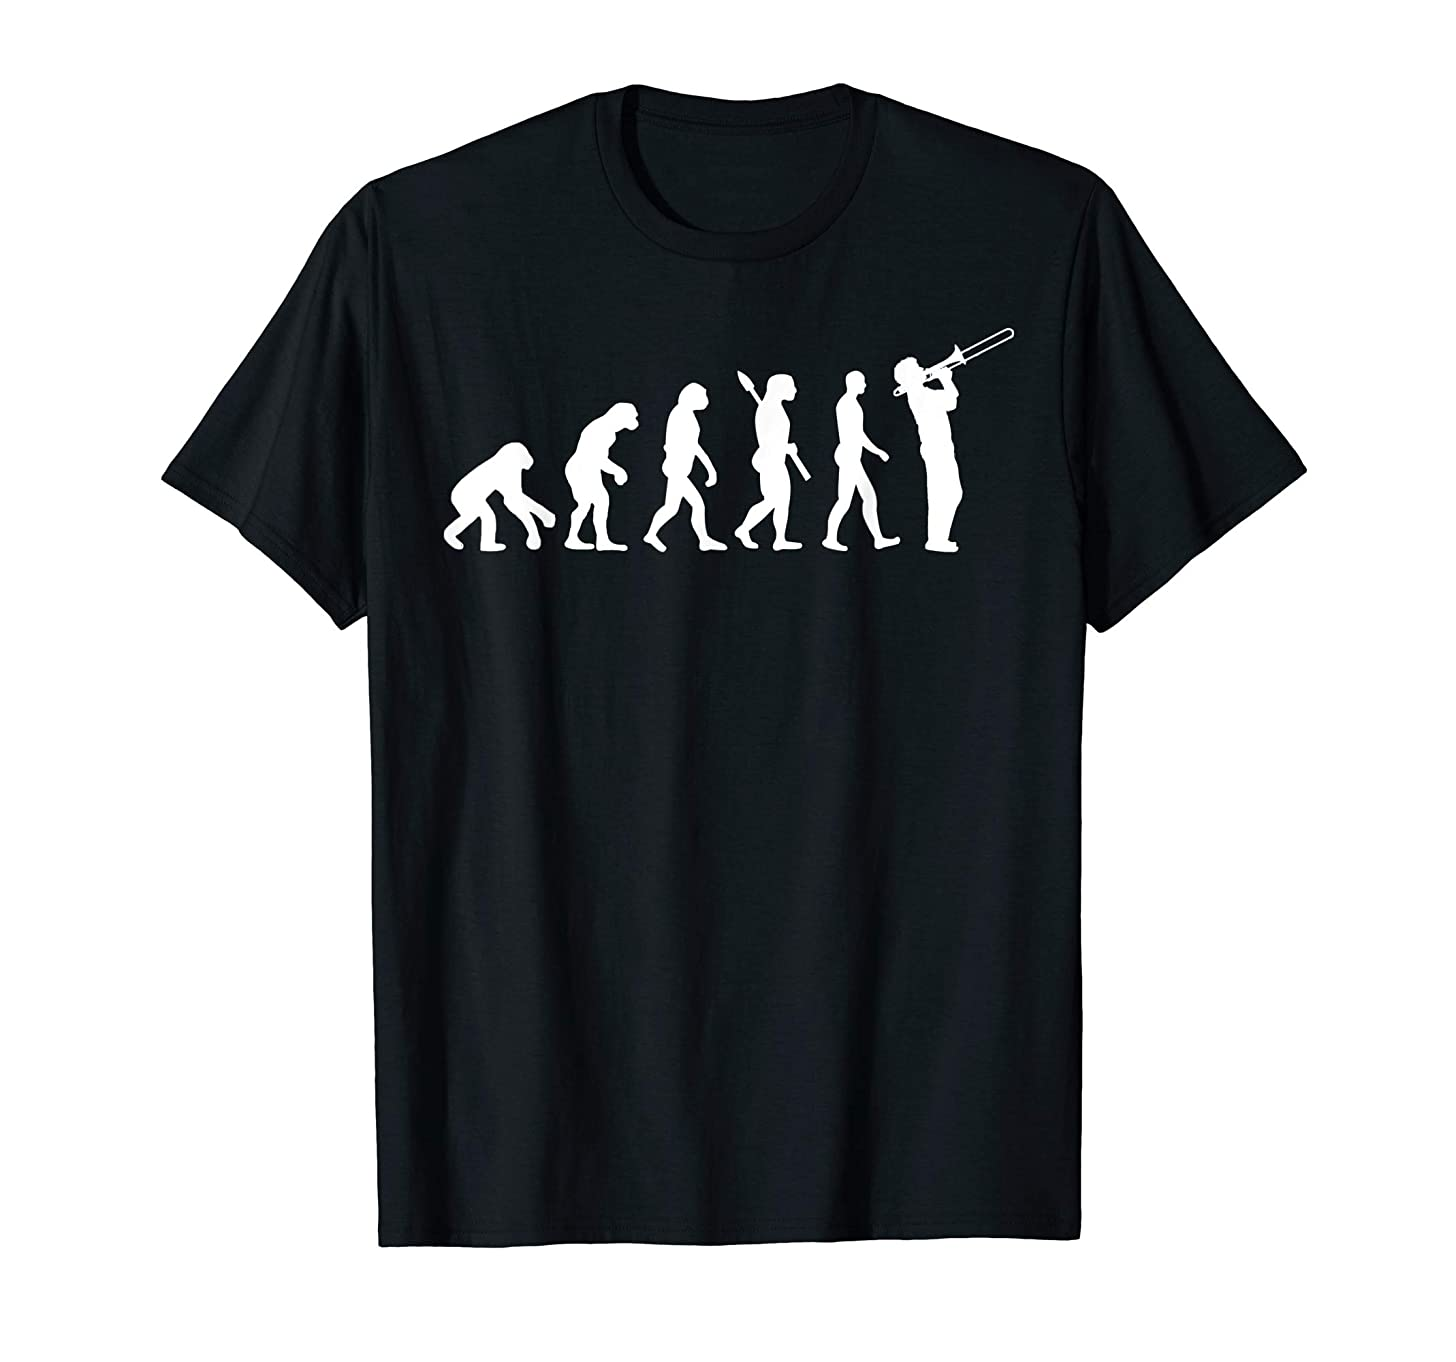 Evolution trombone player T-Shirt Funny Orchestra Gift